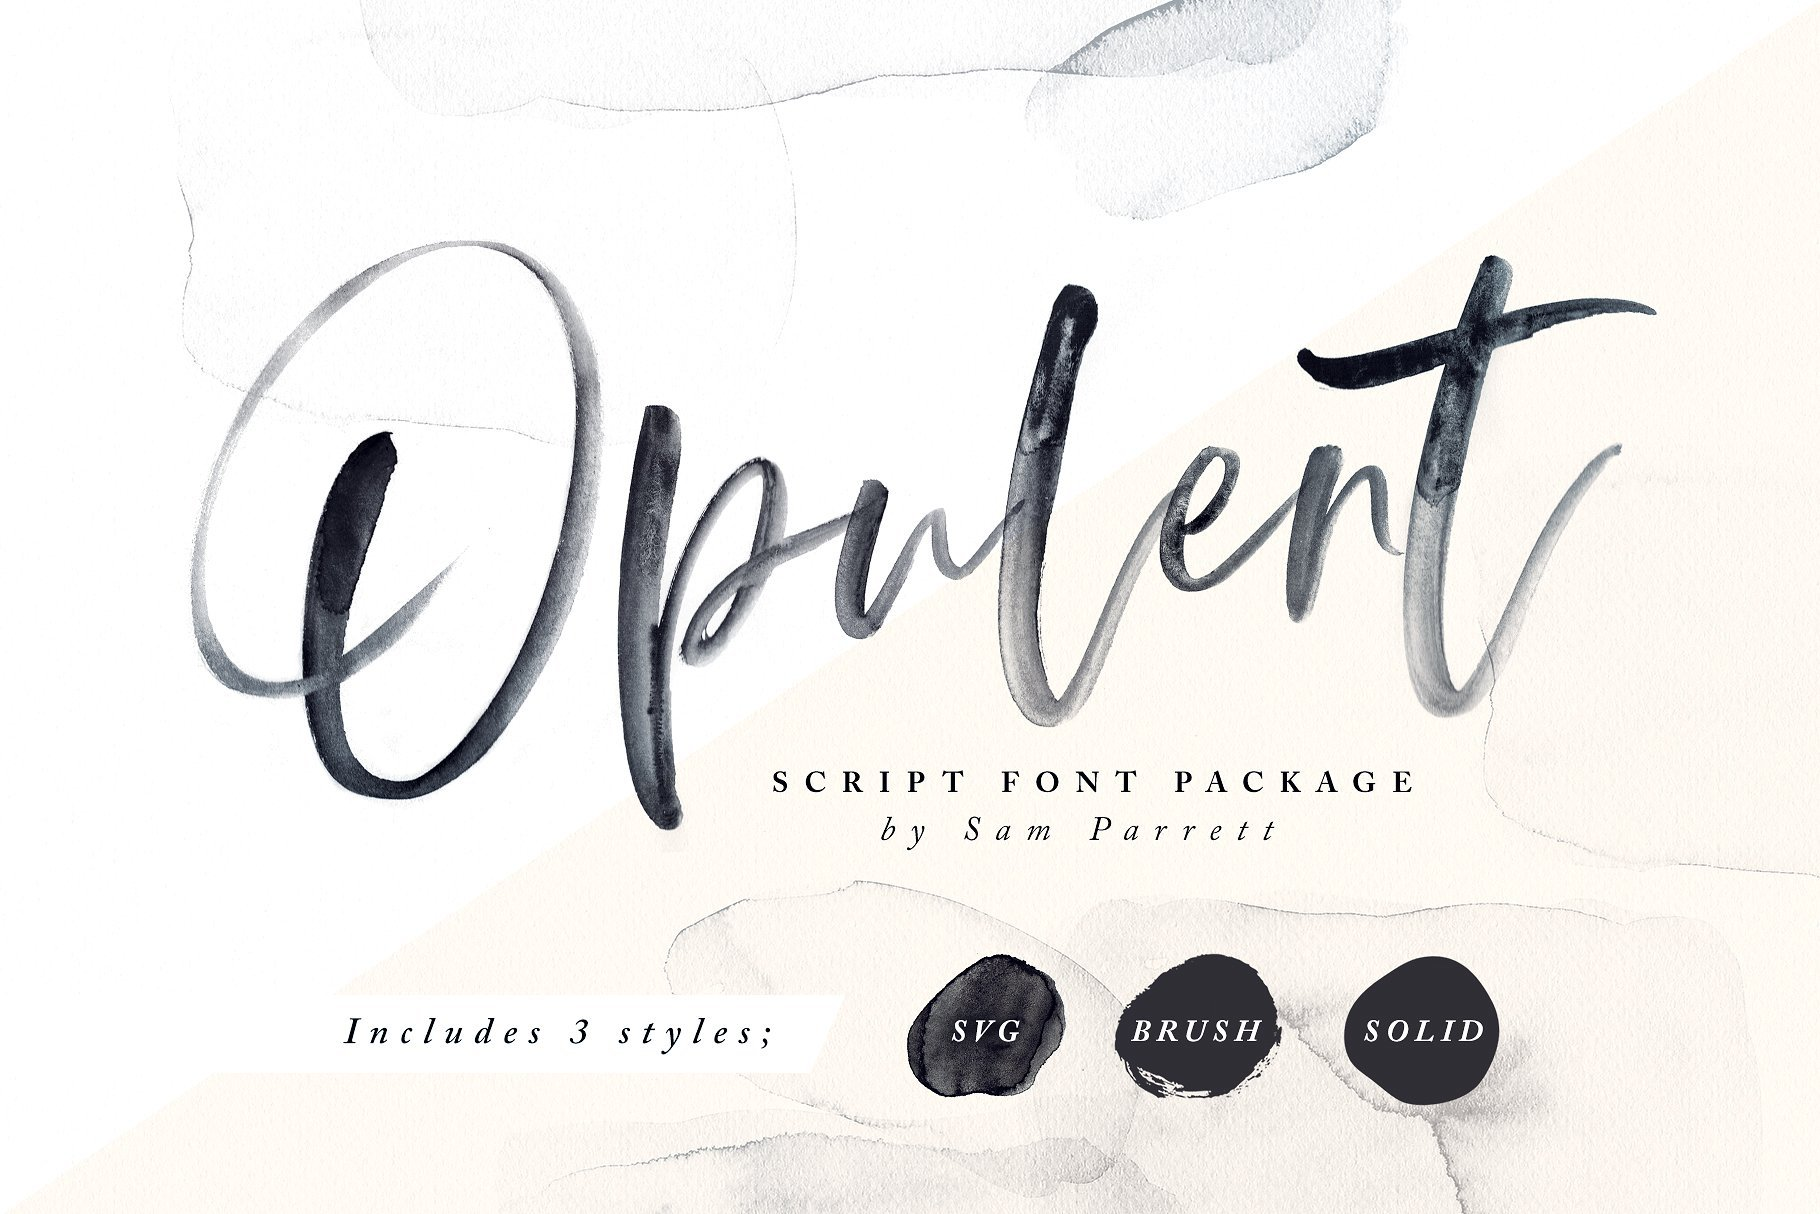 Opulent font svg graphic designer london